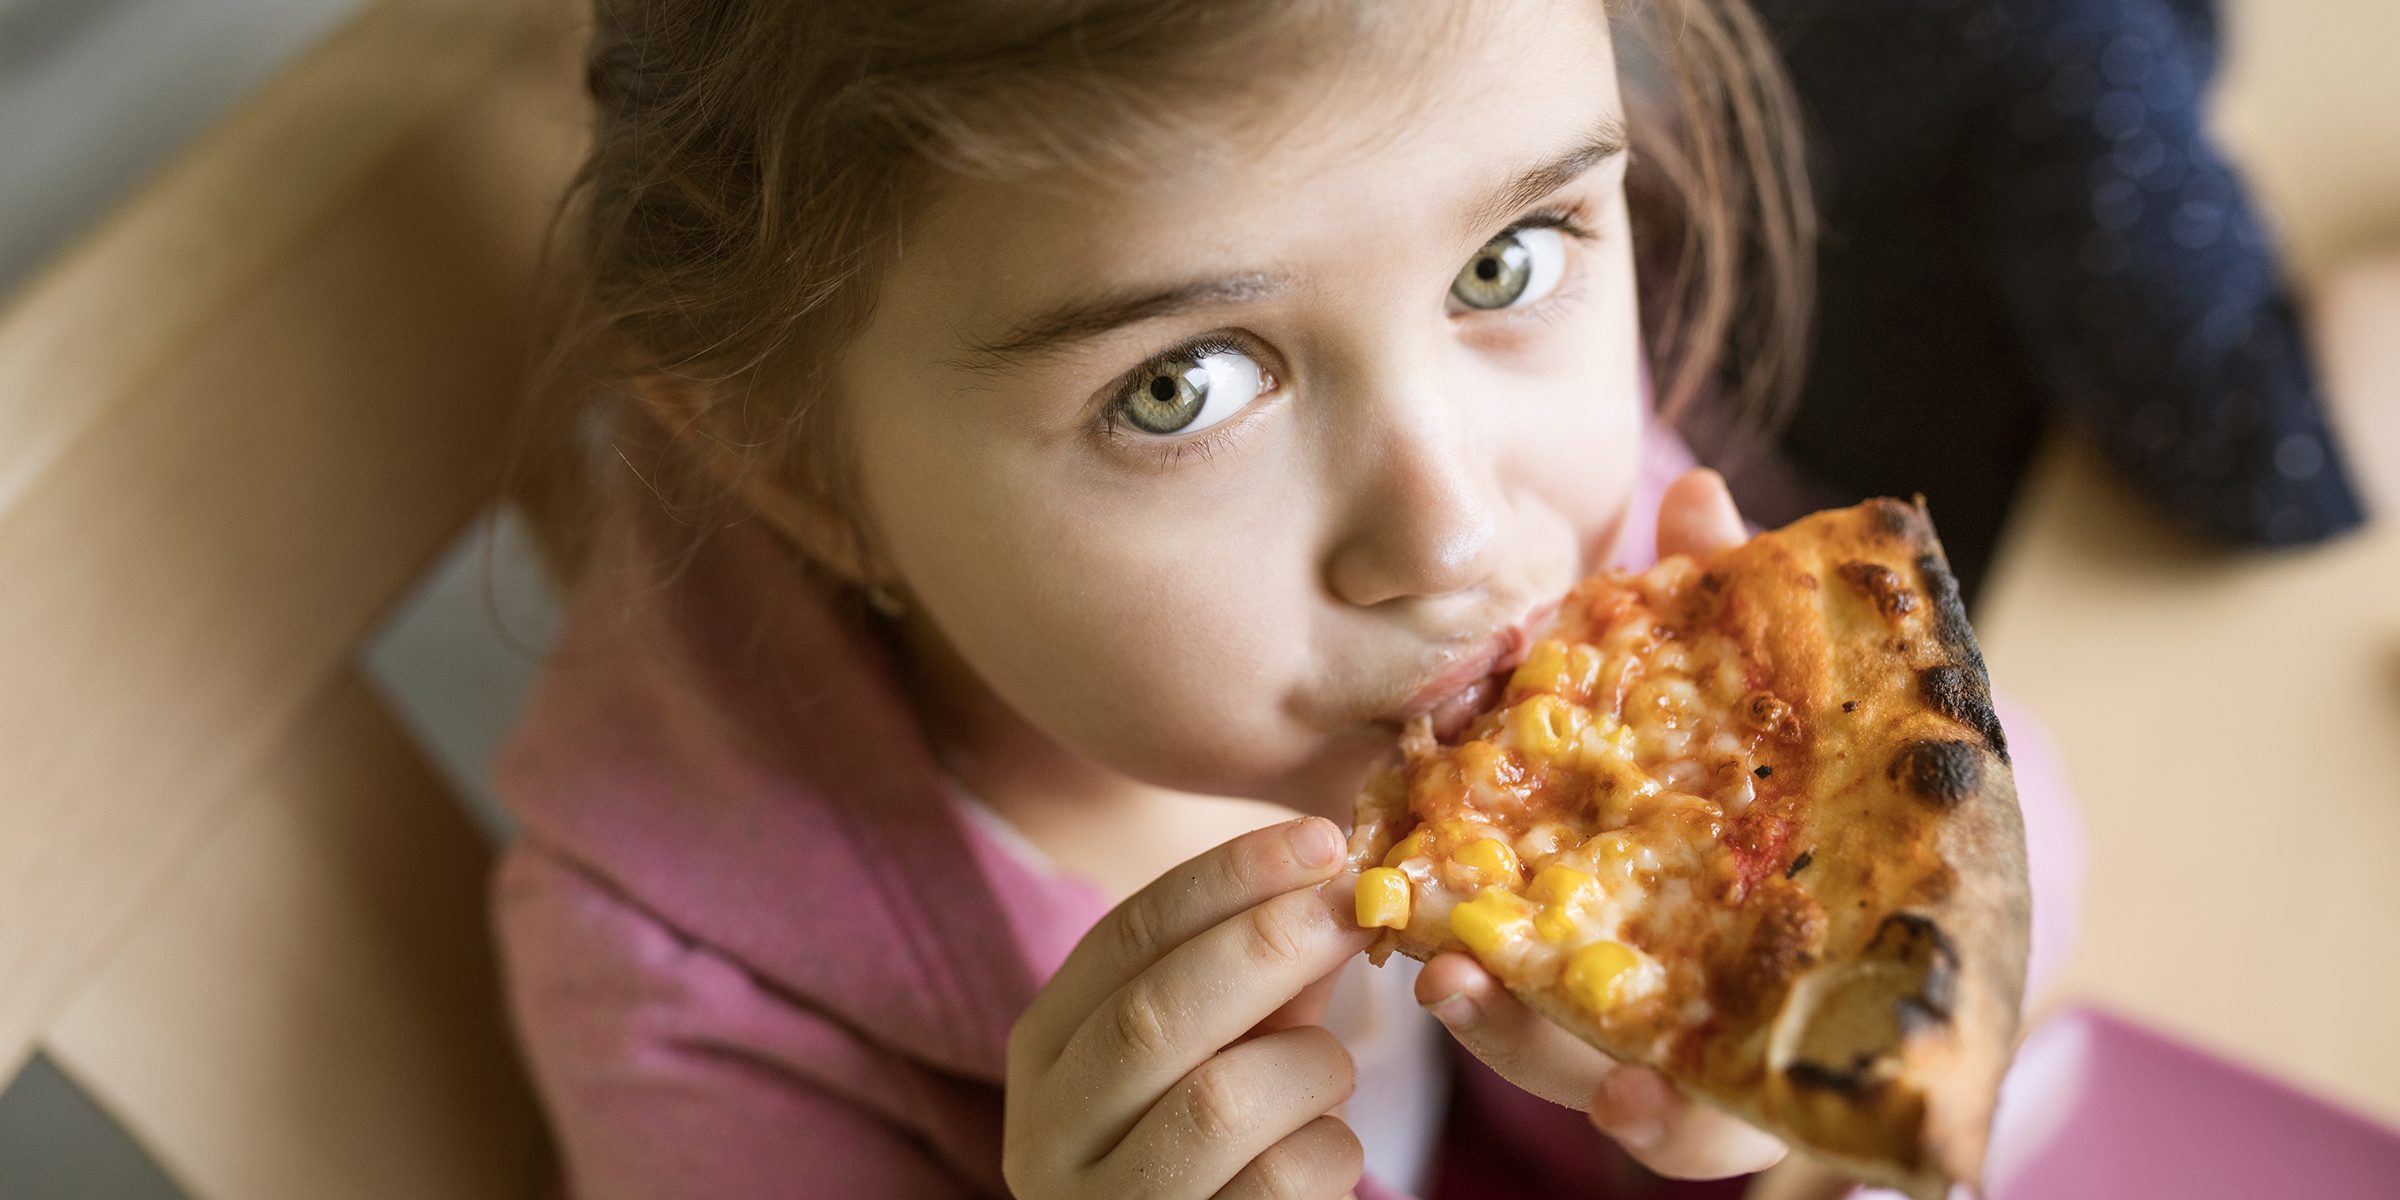 Children, healthy eating and nutrition